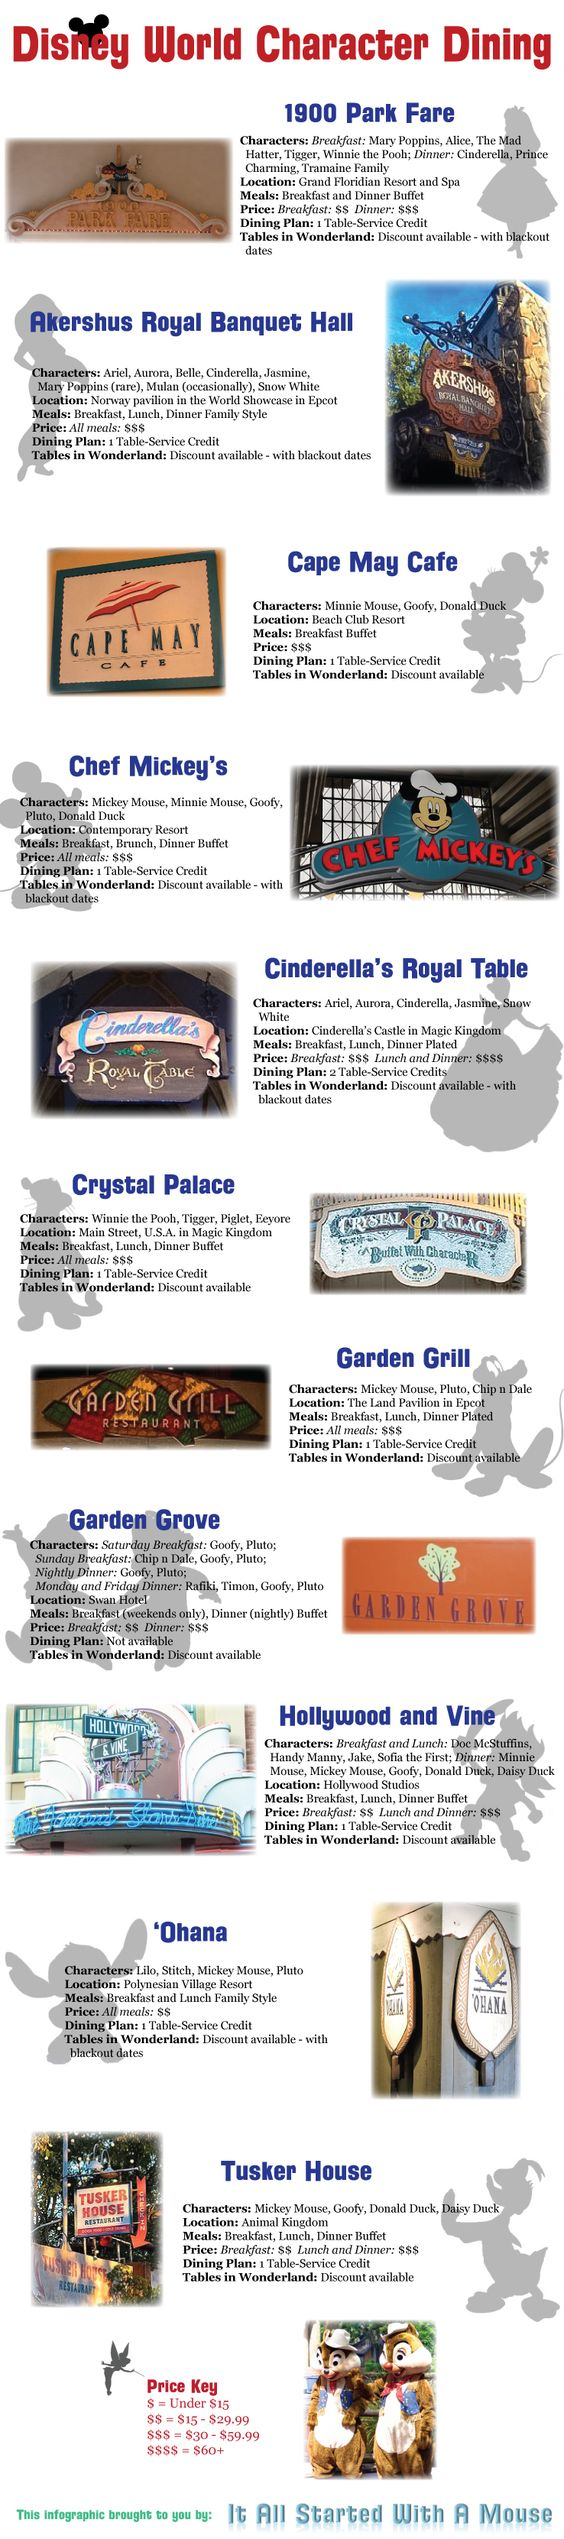 Disney World Character Dining Overview #itallstartedwithamouse